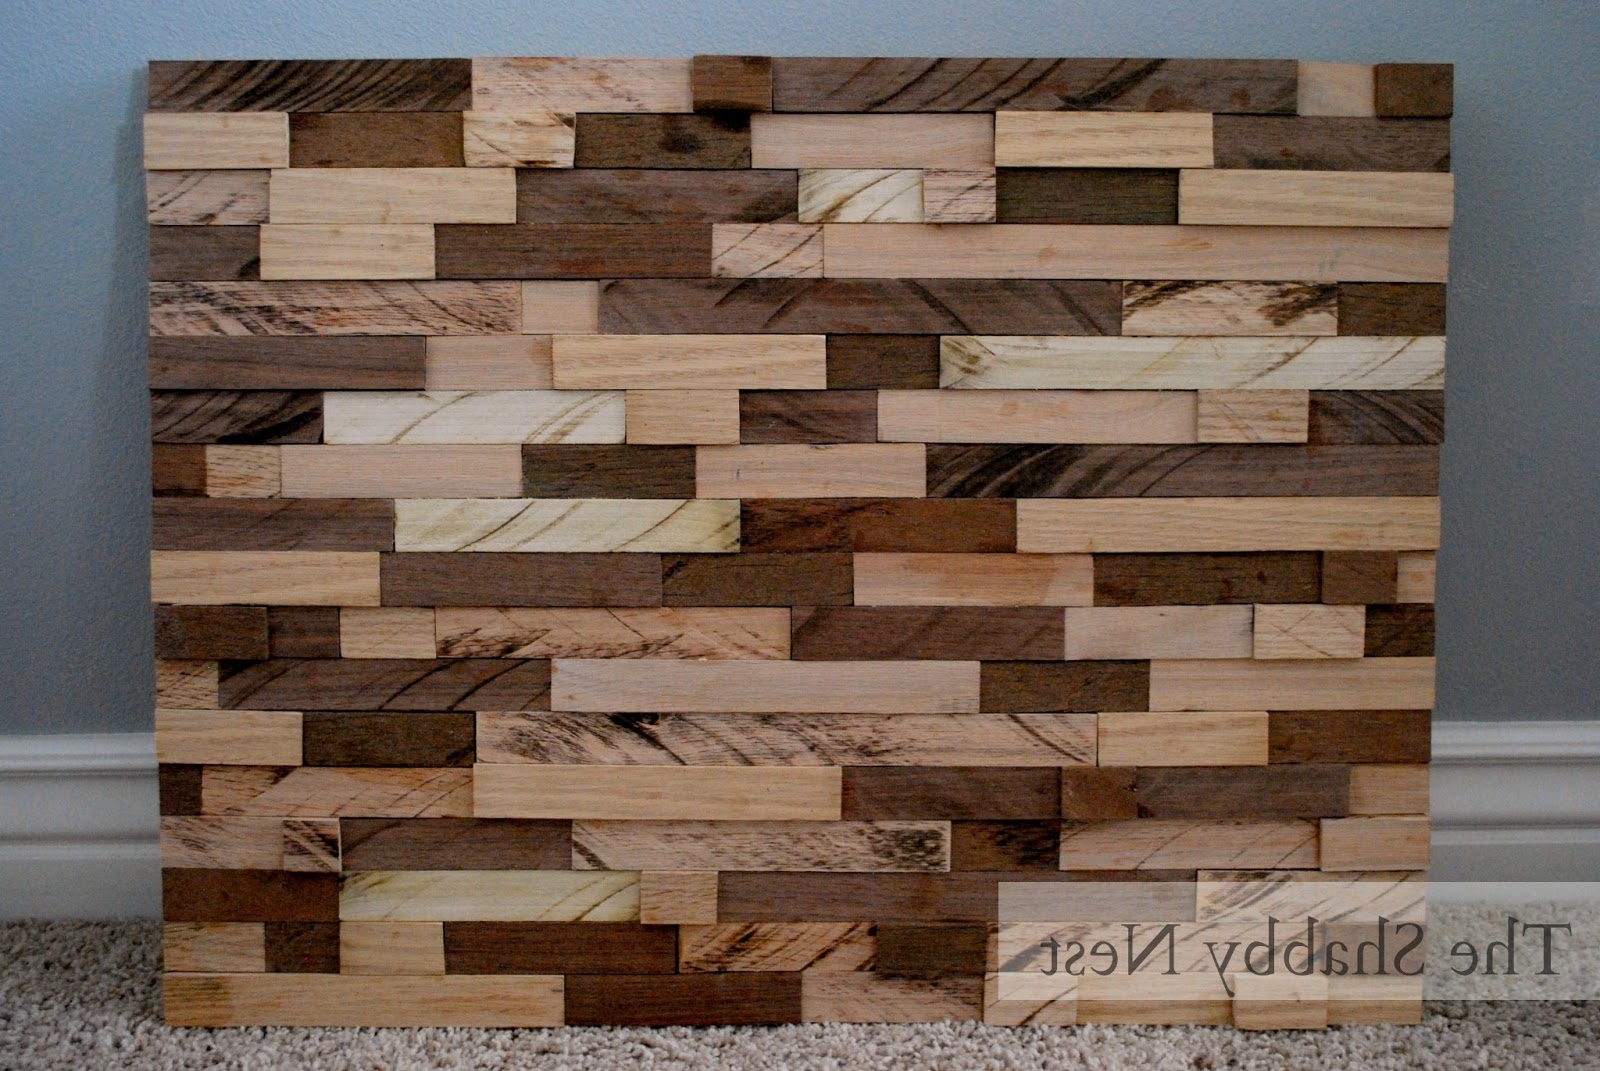 The Shabby Nest: January 2013 Intended For Best And Newest Talking Dead Wood Wall Art (Gallery 8 of 15)